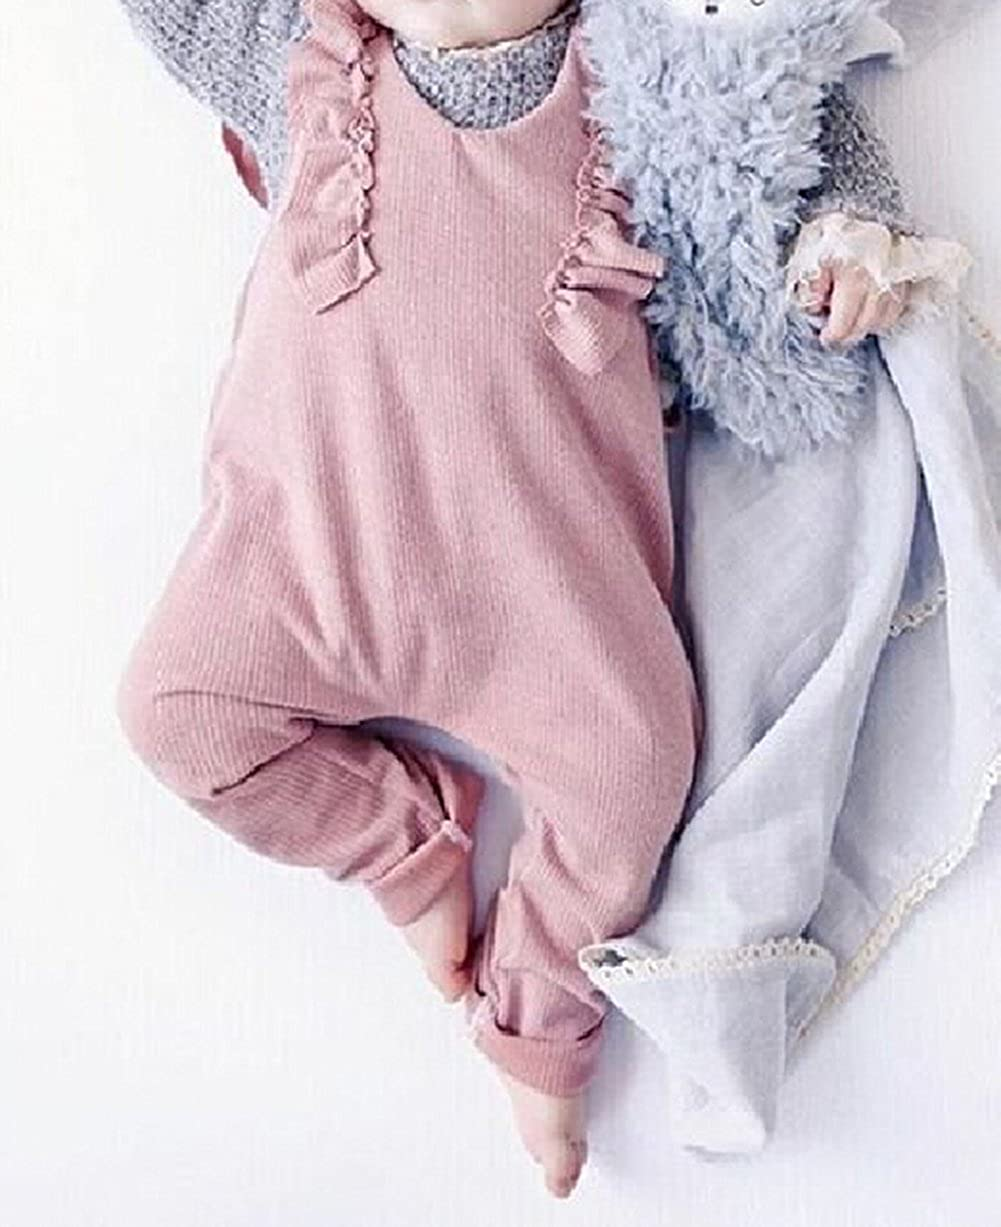 c761c14857a Amazon.com  XARAZA Toddler Baby Girl Ruffle Loose Jumpsuit Romper Overalls  Long Pants Clothes Outfits  Clothing